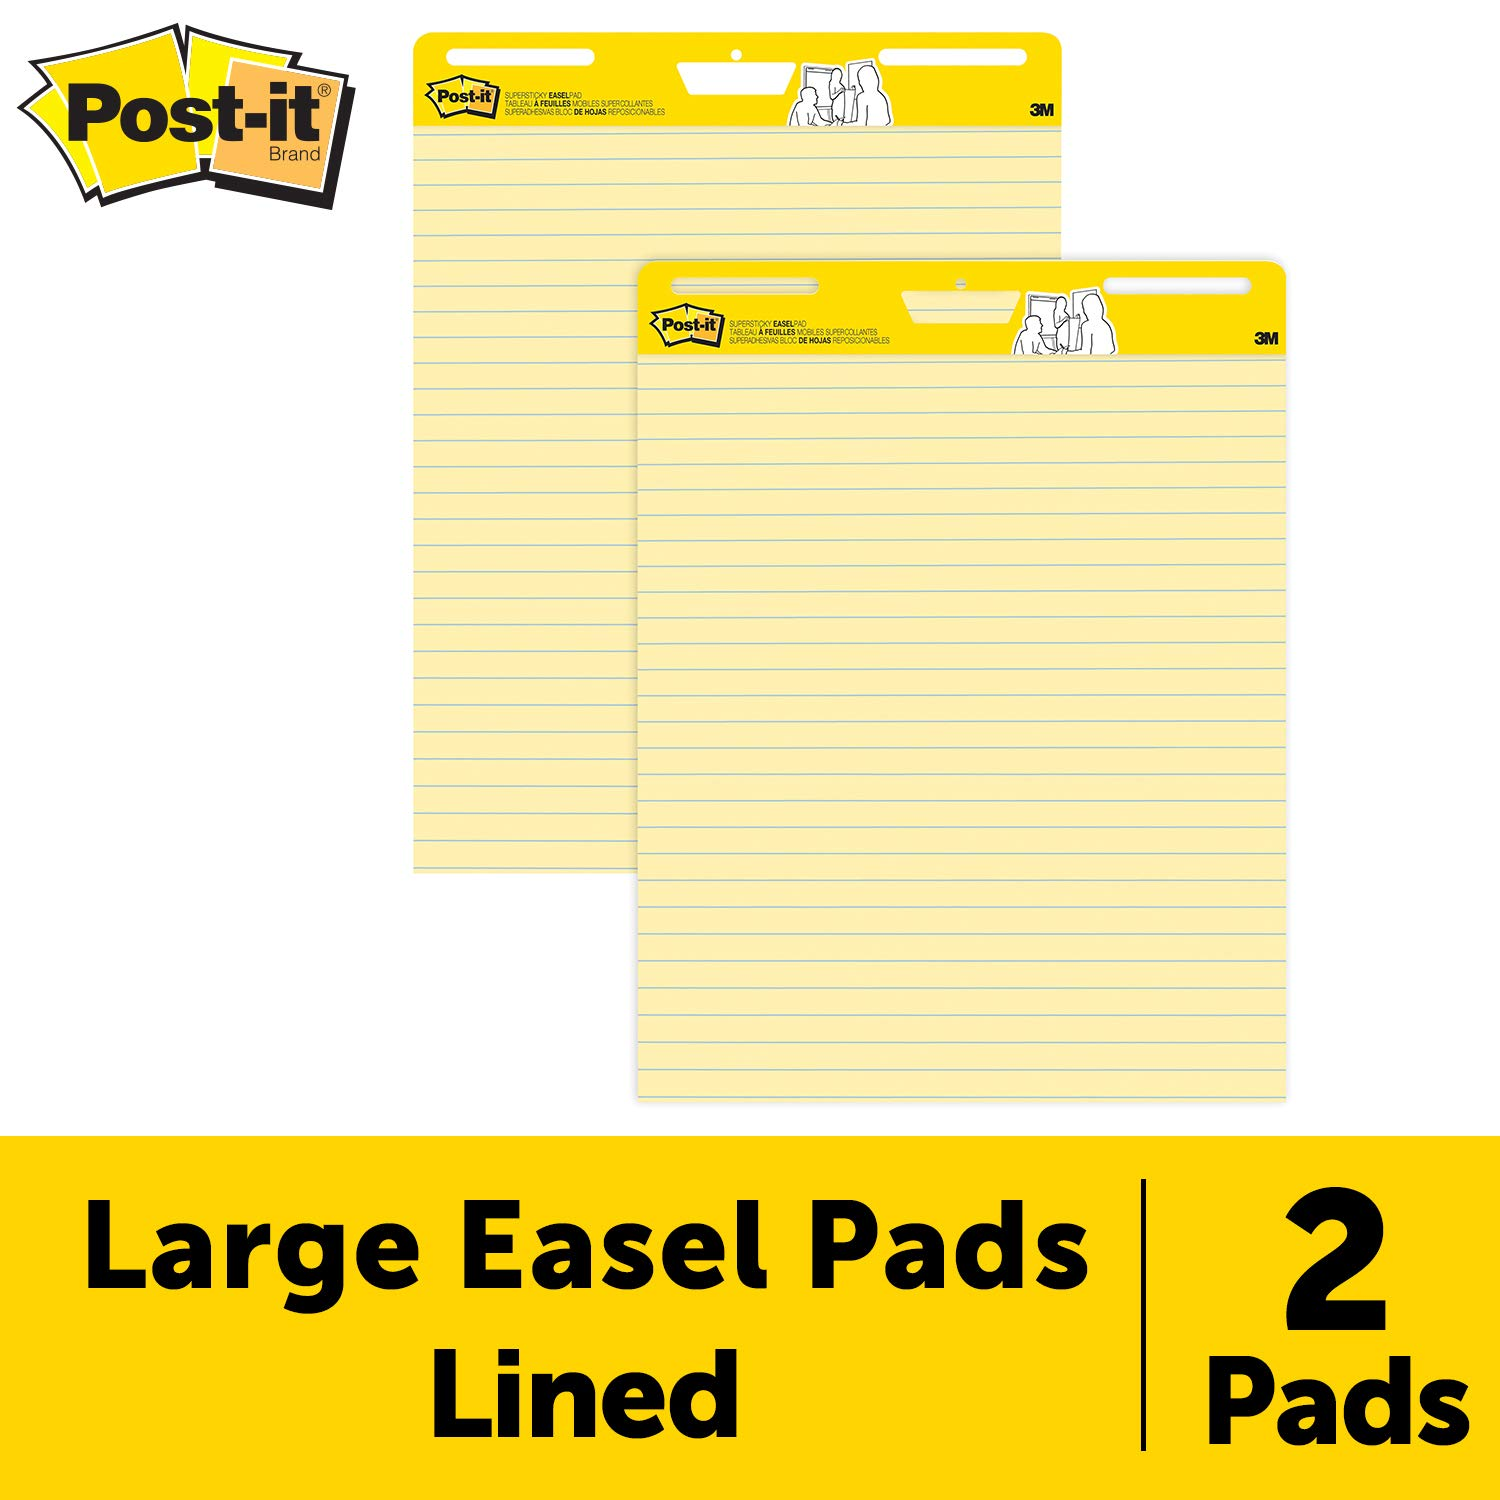 Post-it Super Sticky Easel Pad, 25 x 30 Inches, 30 Sheets/Pad, 2 Pads (561), Yellow Lined Premium Self Stick Flip Chart Paper, Super Sticking Power